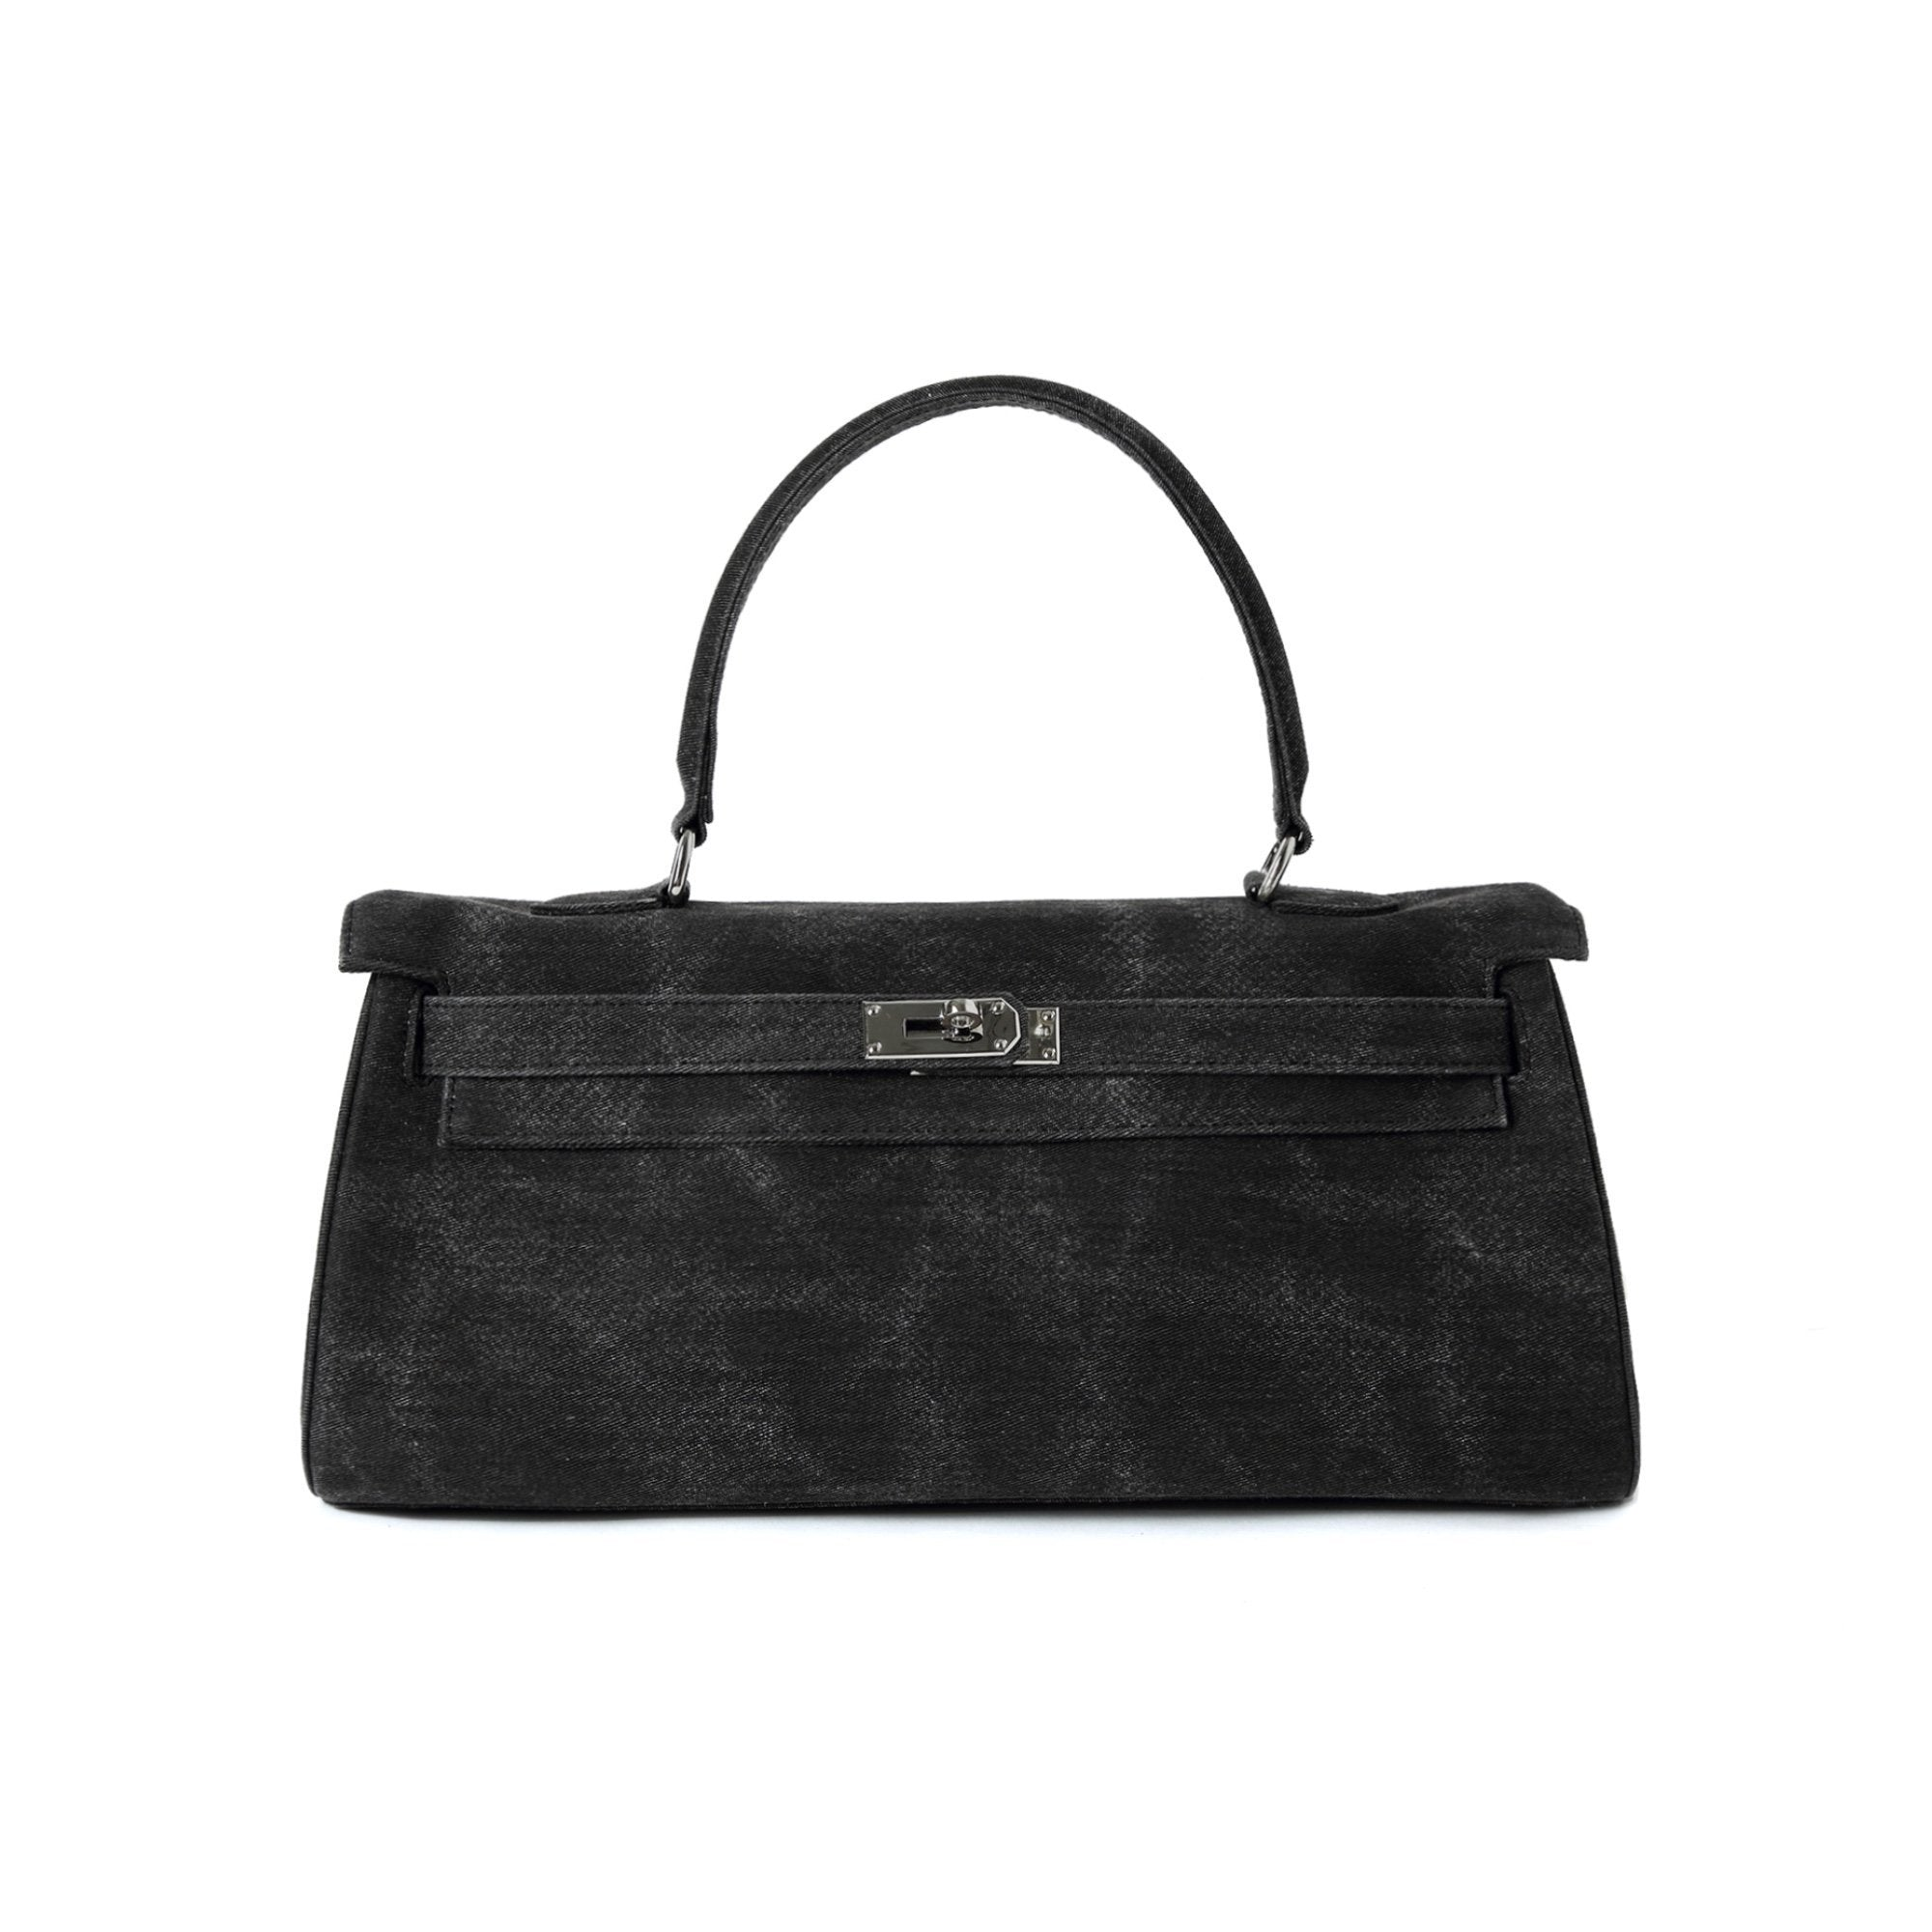 MARGIN GOODS Common Bag Kelly Black | MADA IN CHINA